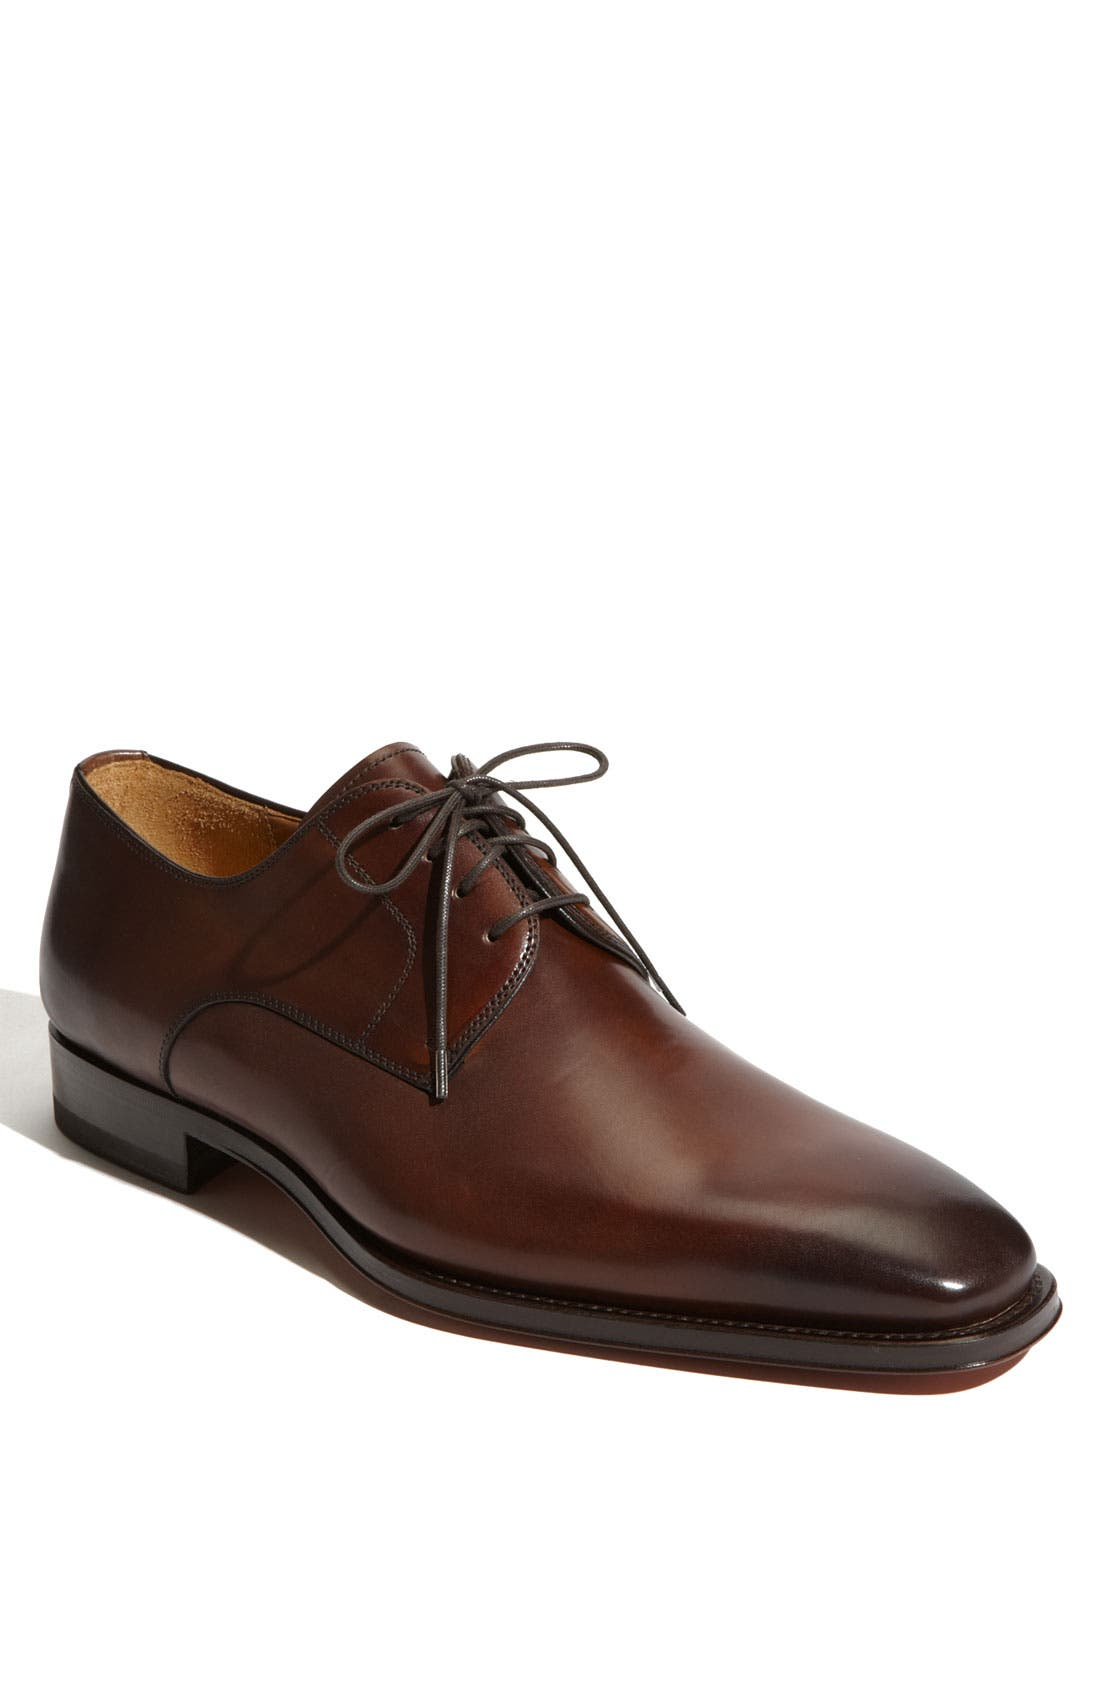 MAGNANNI 'Colo' Plain Toe Derby